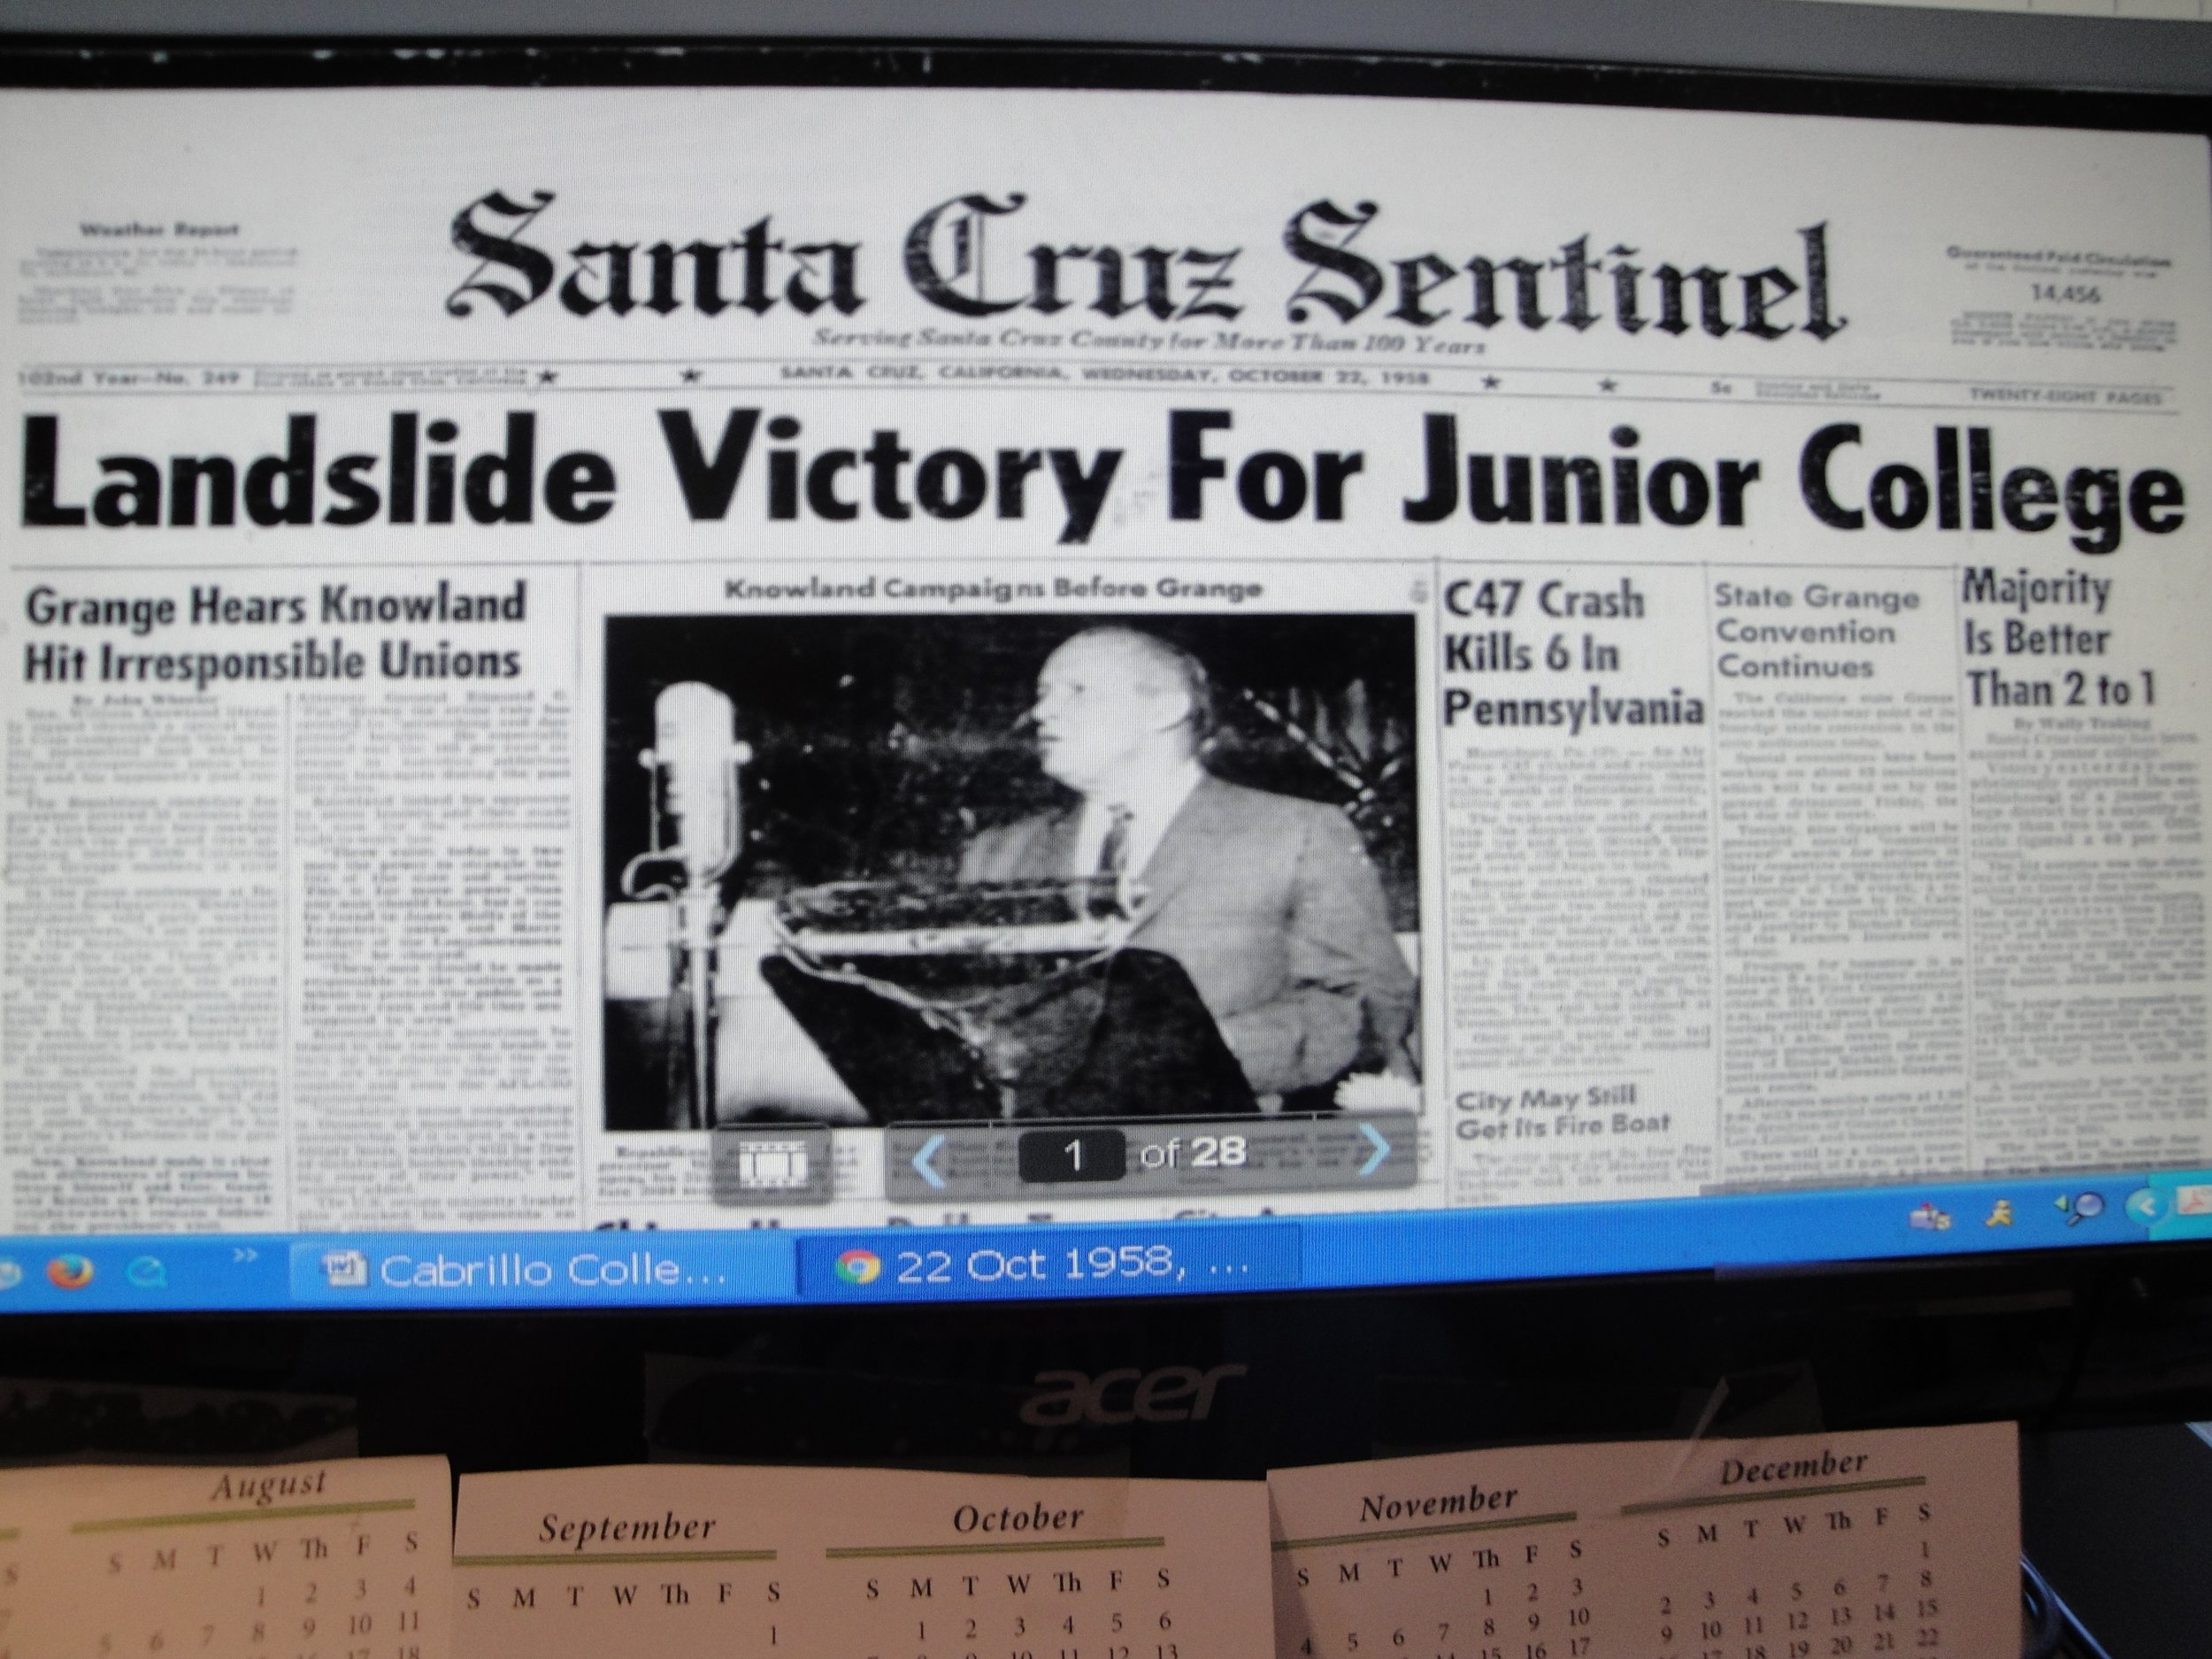 """The Santa Cruz Sentinel declared the 1958 election victory for the junior college a """"landslide."""""""